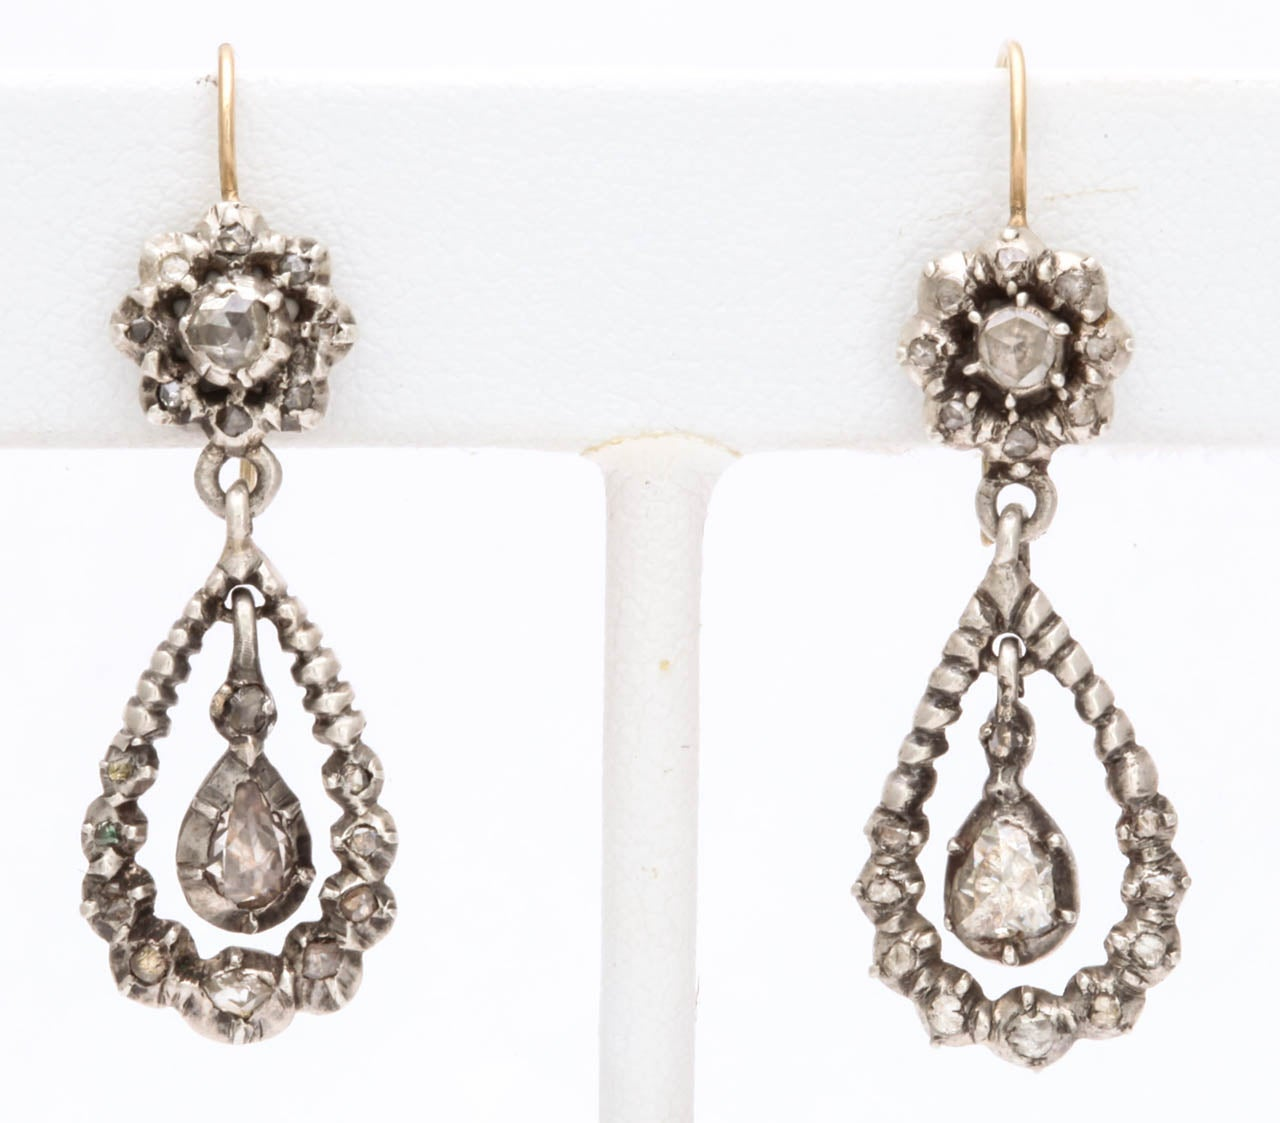 Brilliant and  glistening foiled old cut diamonds, hand cut and polished, show that each stone is individually shaped and set.   This is important in determining the age of antique jewelry and one reason why Georgian jewelry is desired.  All